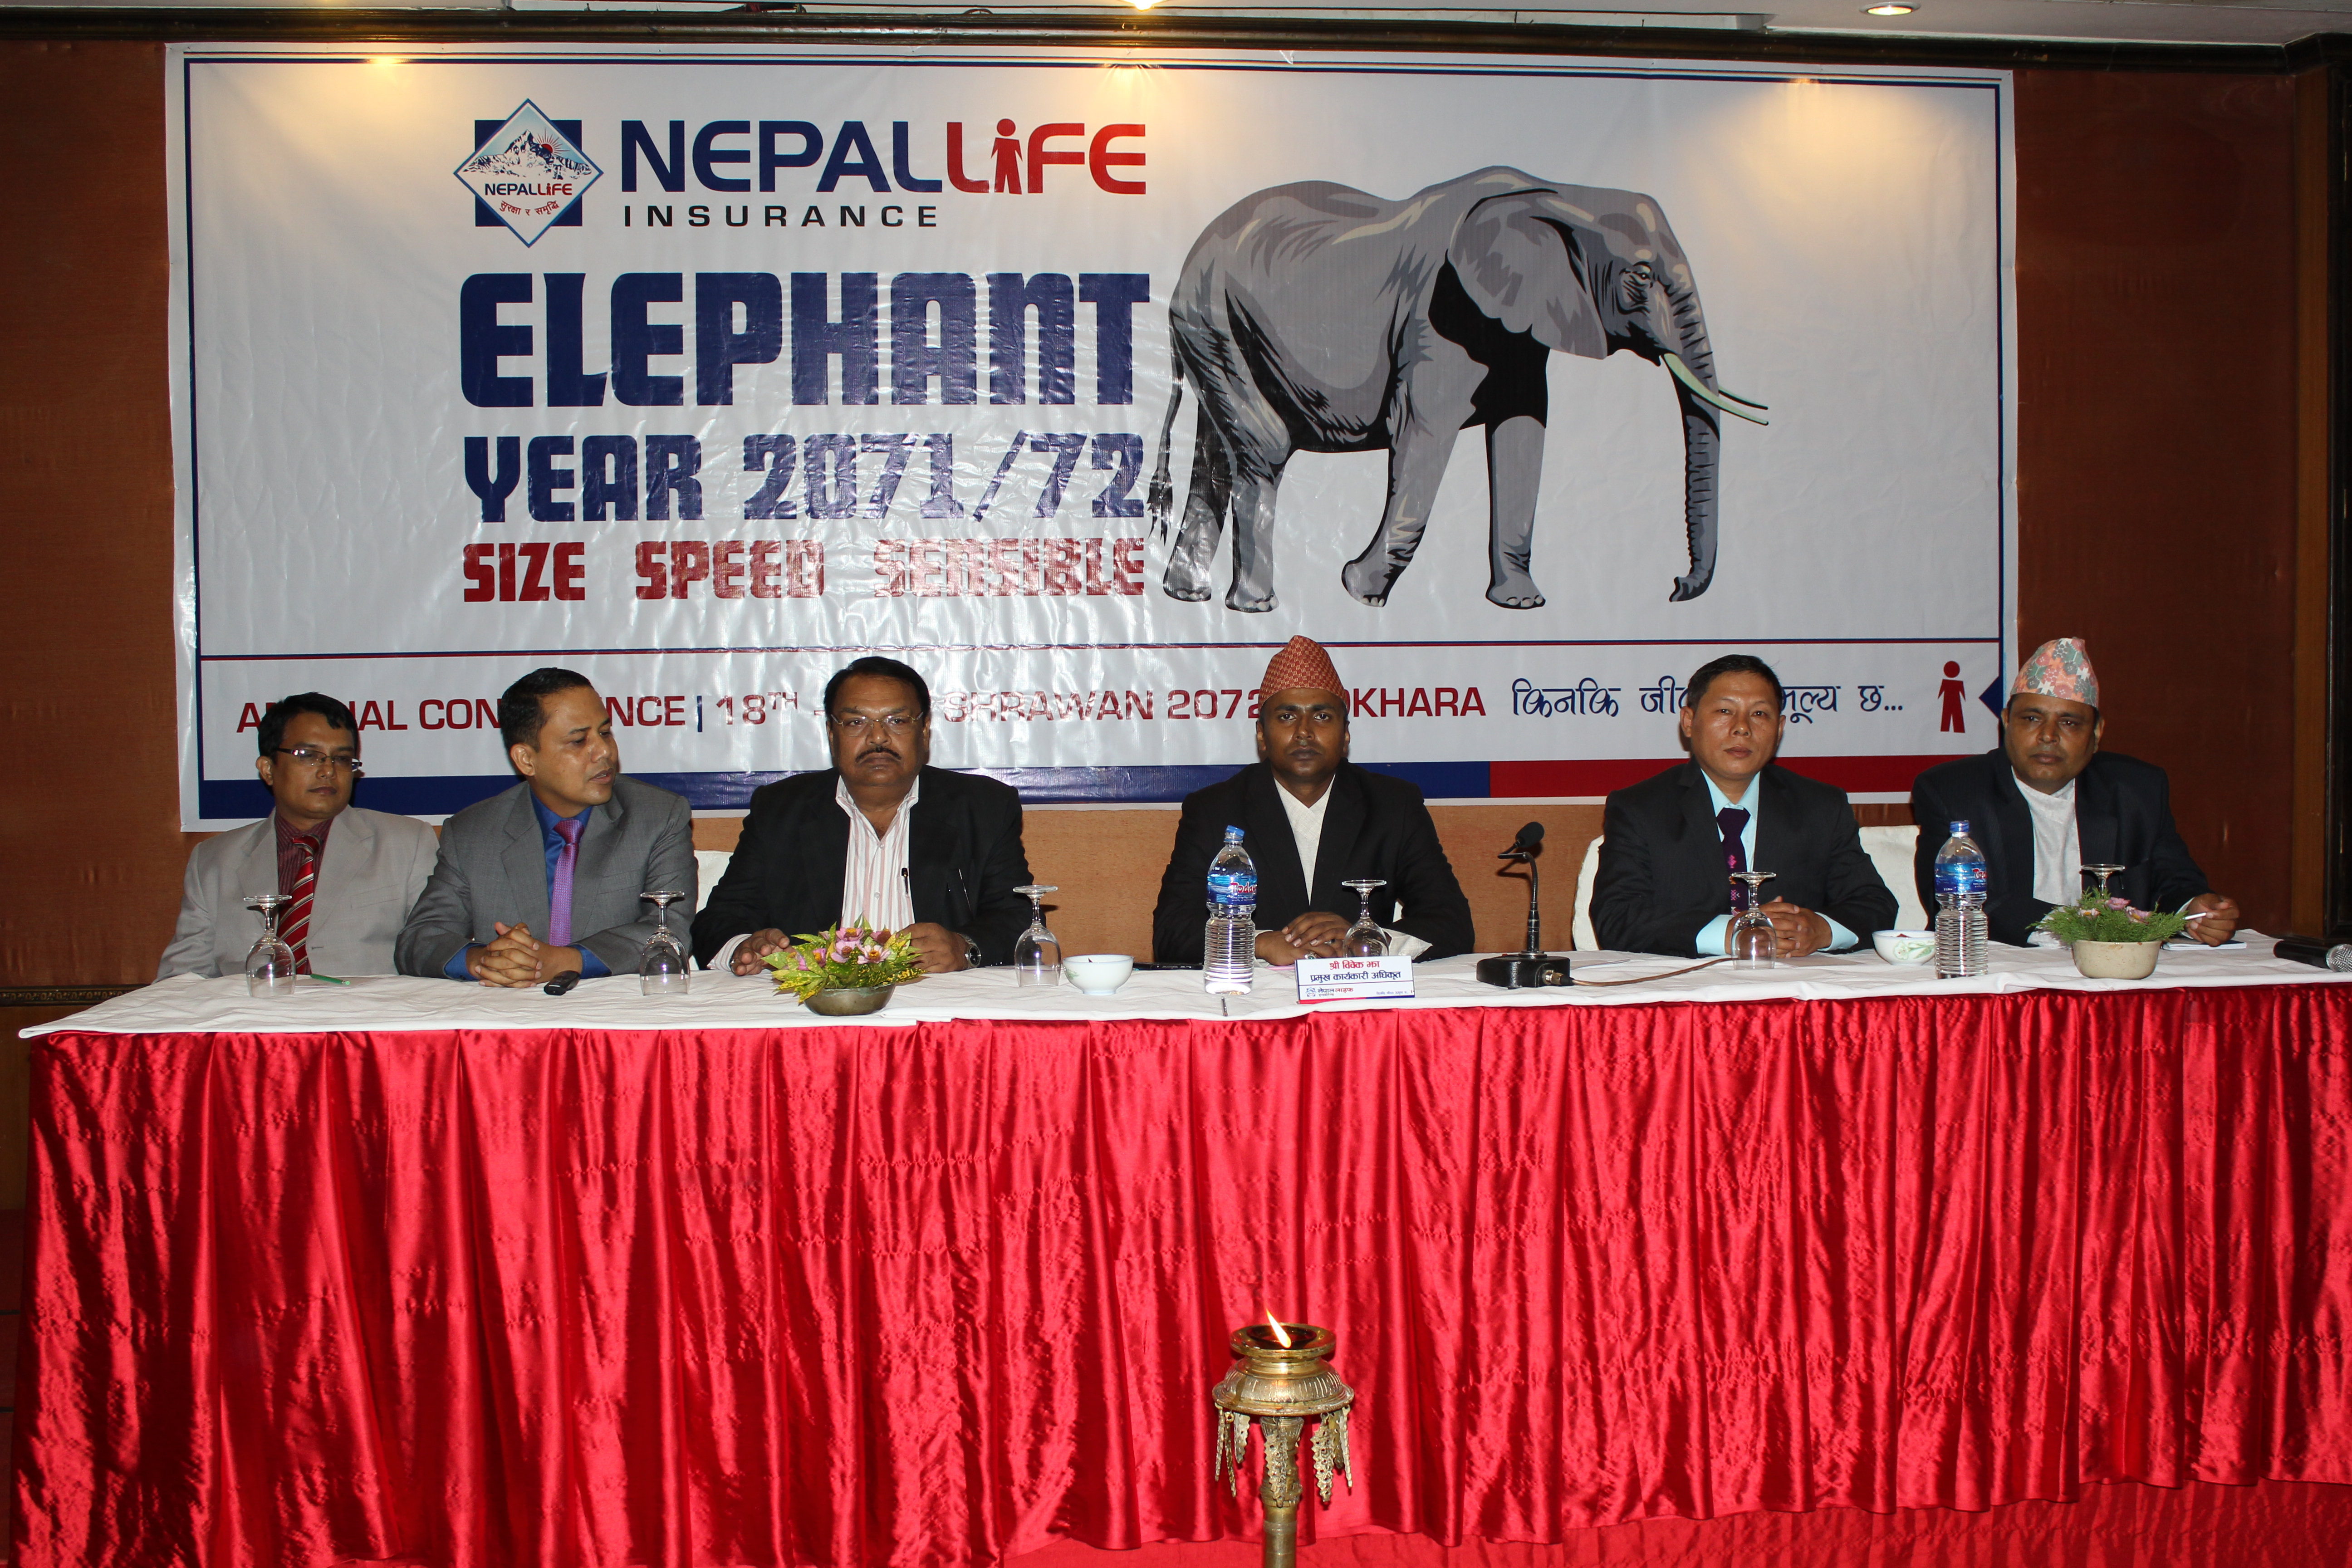 Annual Conference - Elephant Year 2071-72